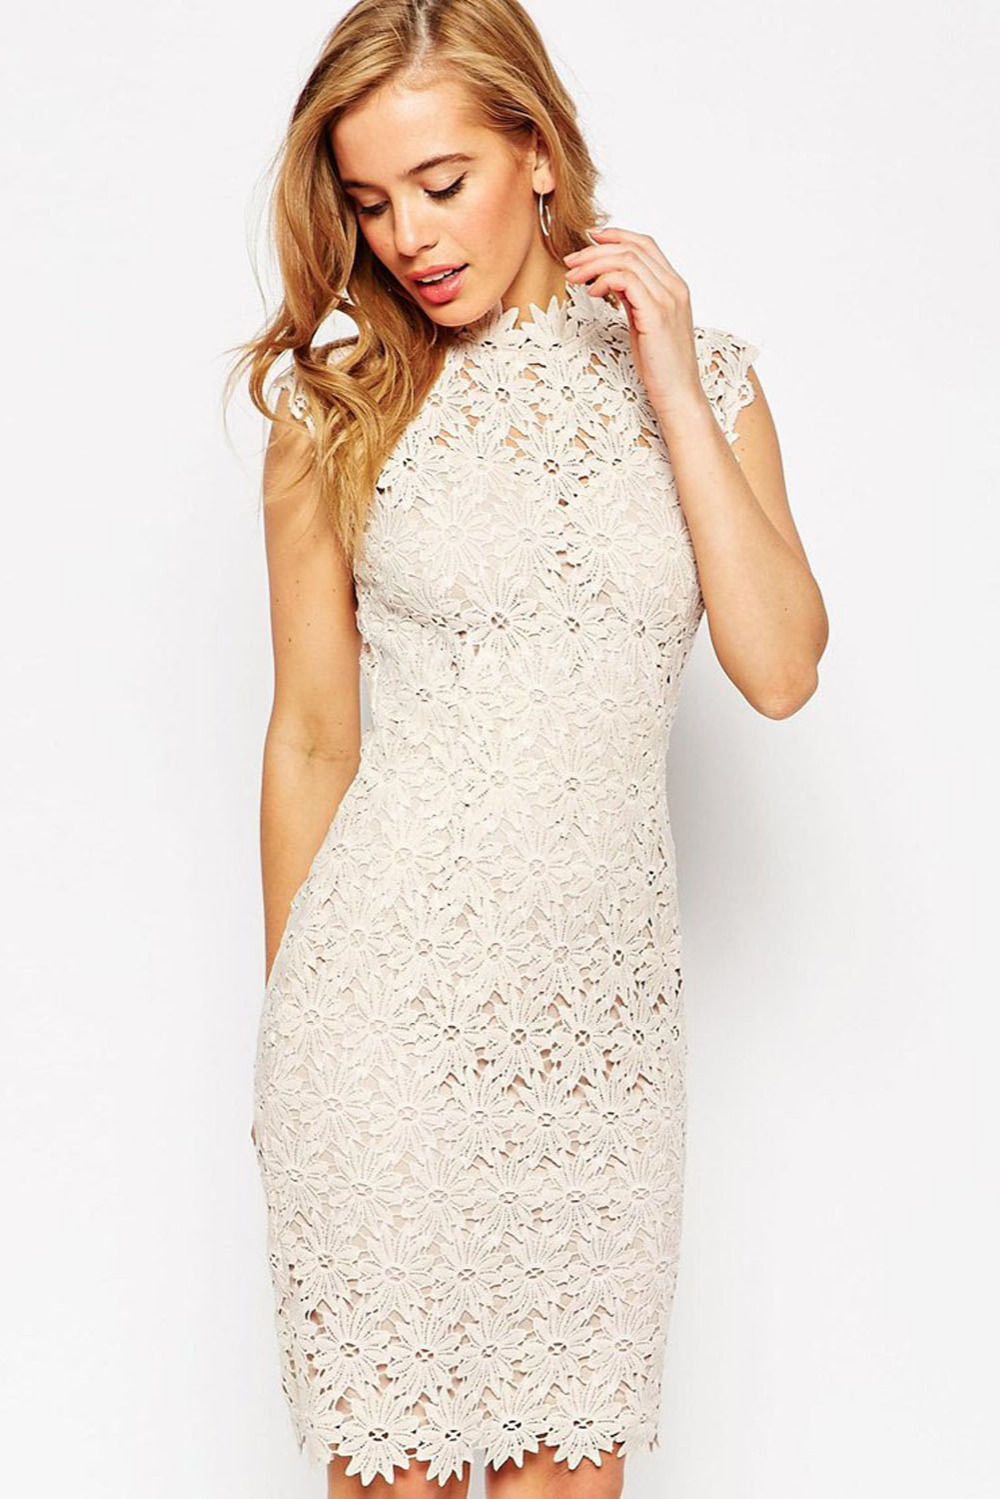 20ac2e0451 Get Quotations · Women Dress 2015 Sexy Dresses Vestido Casual White Lace  Applique High Neck Midi Dress Zip Bodycon